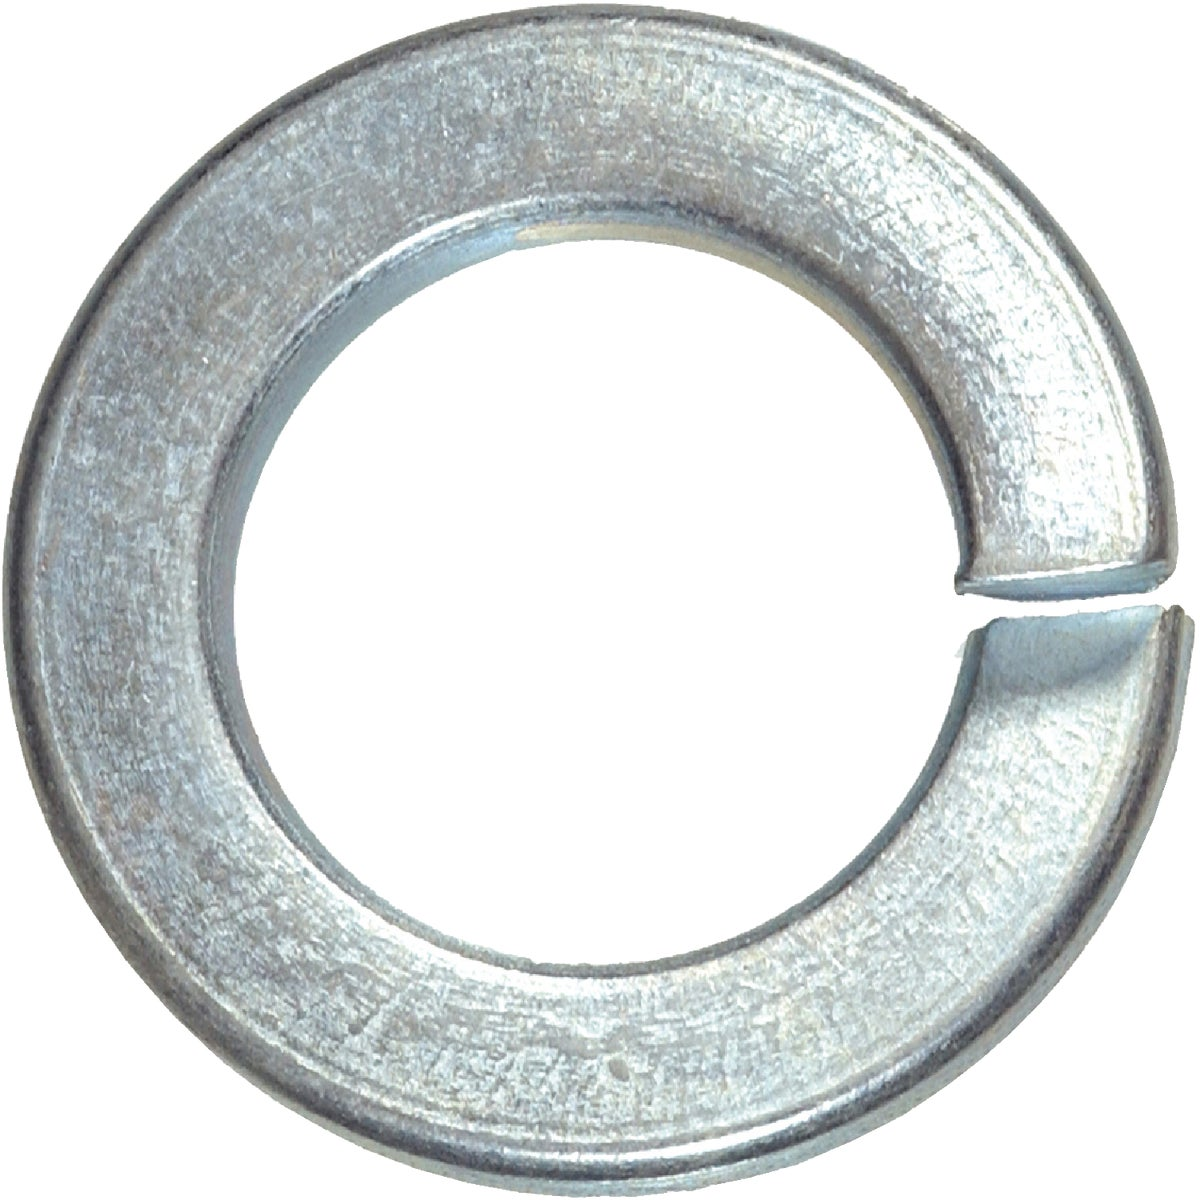 "100PC 3/8"" LOCK WASHER - 300024 by Hillman Fastener"